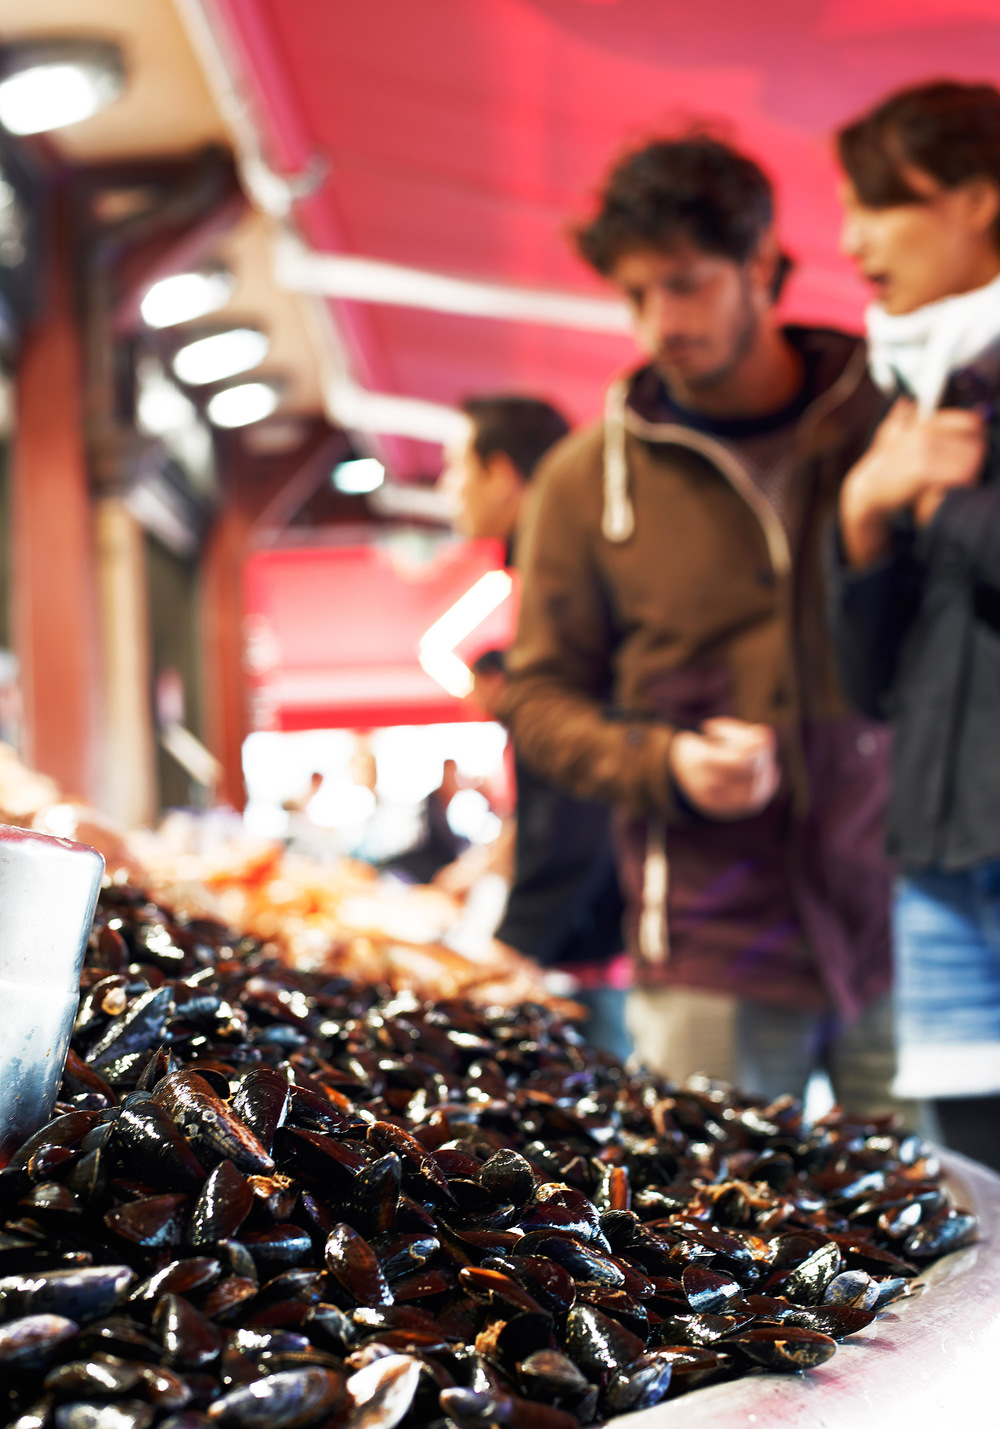 mussels-and-shoppers.jpg